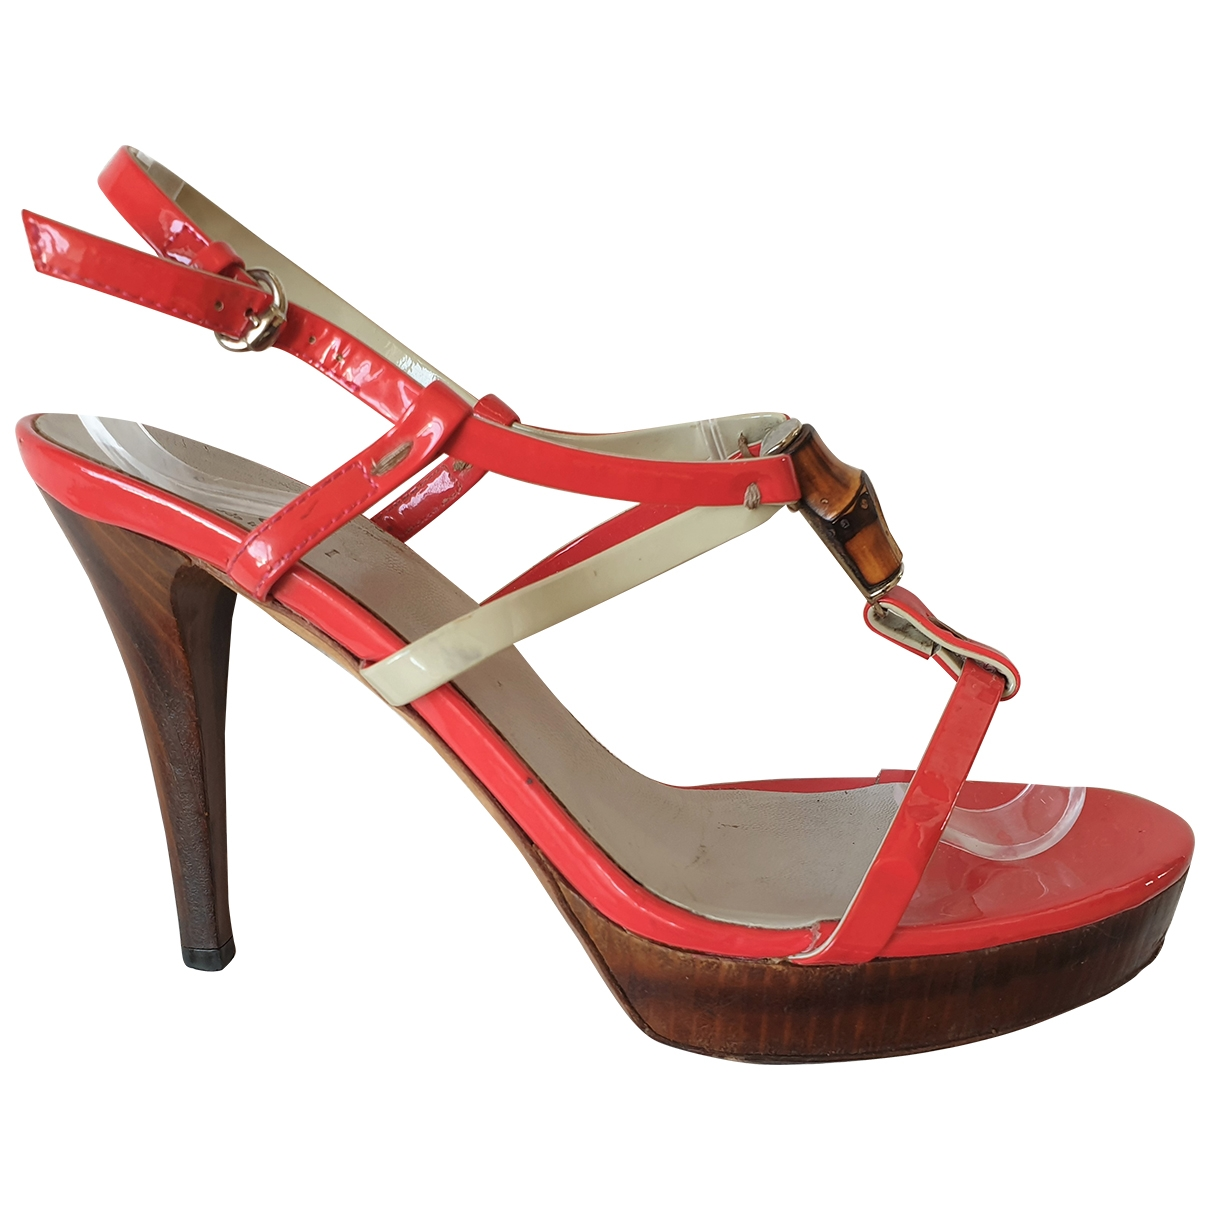 Gucci \N Red Patent leather Sandals for Women 38.5 EU